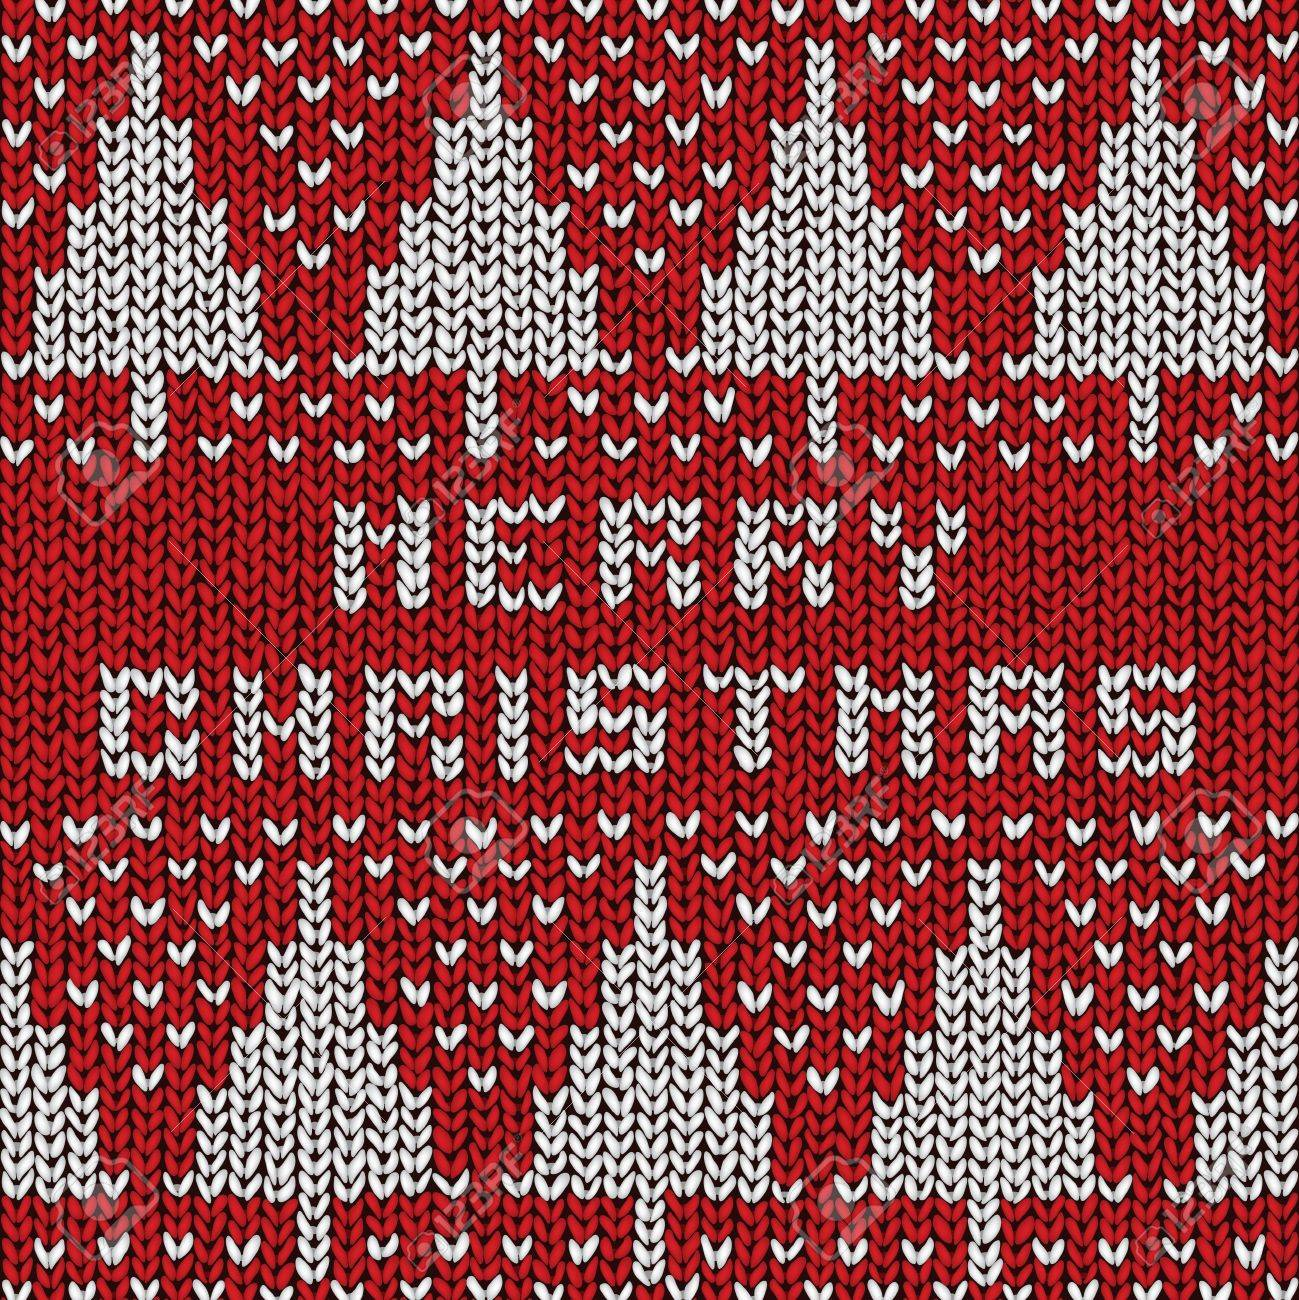 Christmas Sweater Background.Christmas Sweater Background Vector Eps10 Illustration